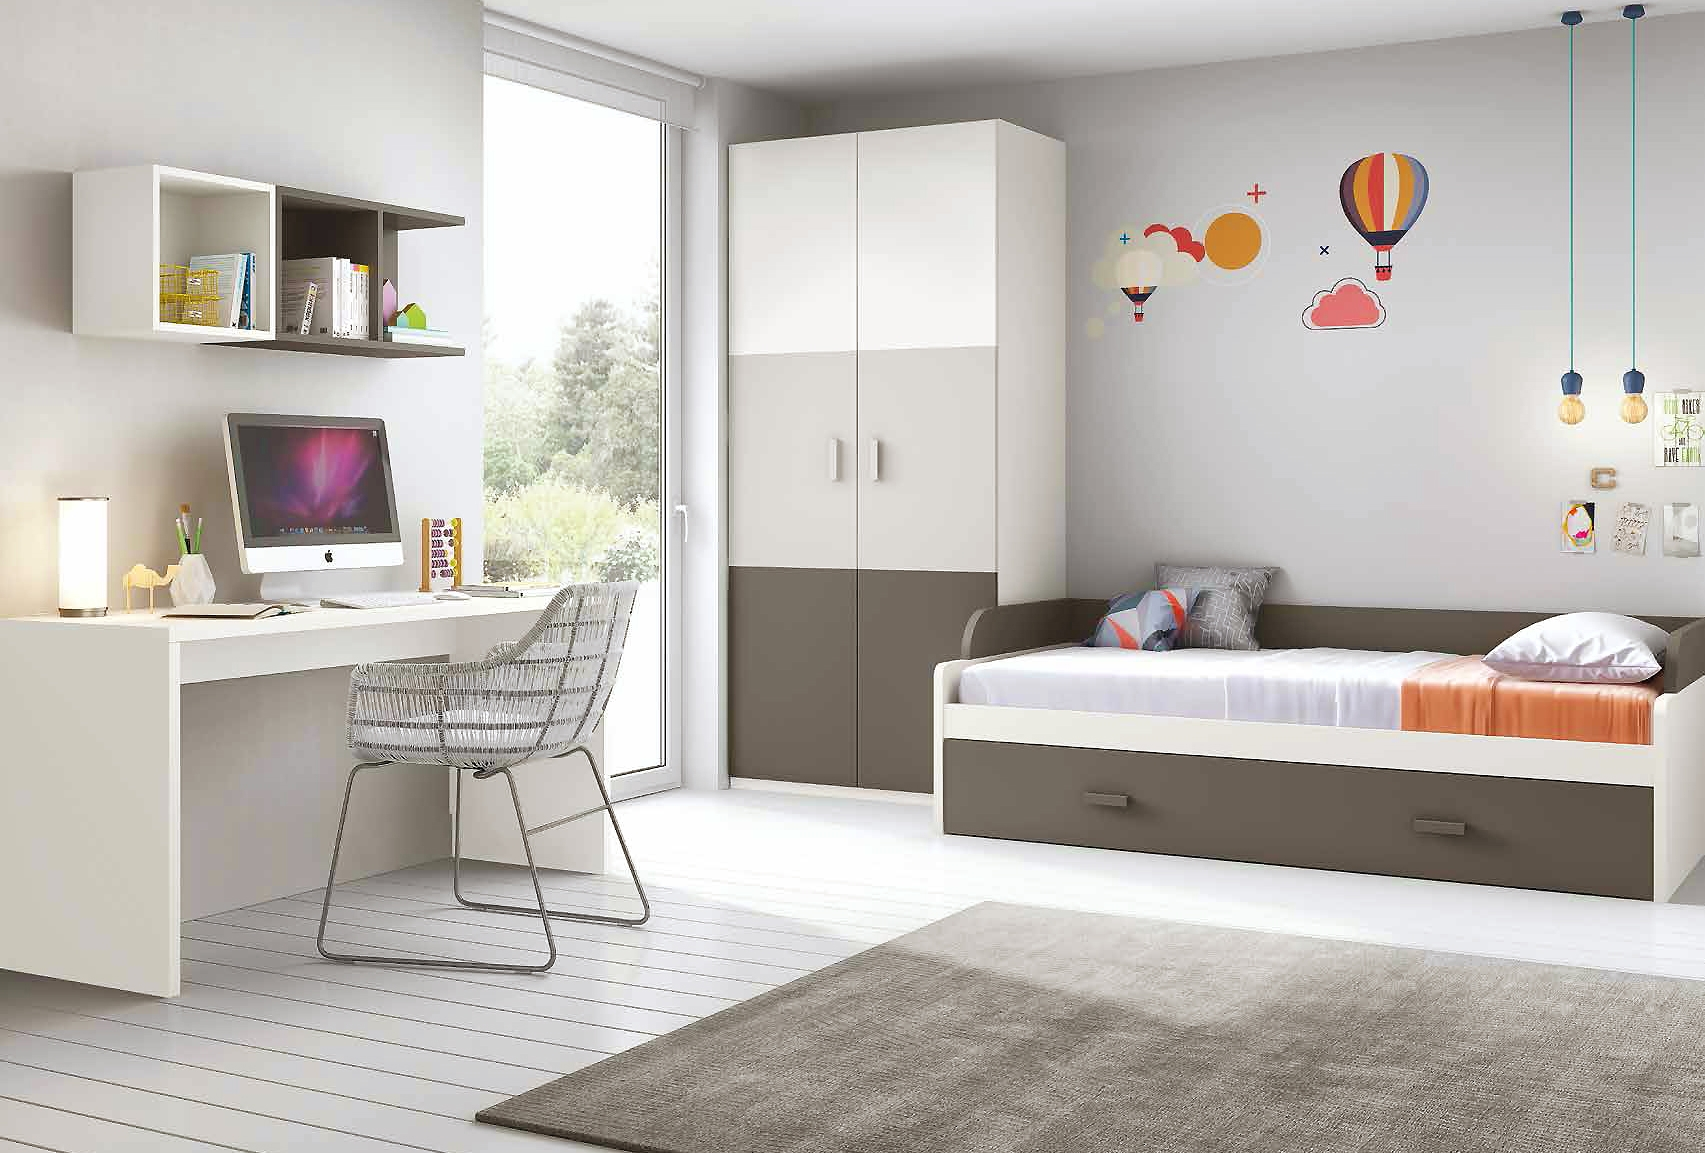 chambre enfant complete moderne avec lit gigogne glicerio so nuit. Black Bedroom Furniture Sets. Home Design Ideas